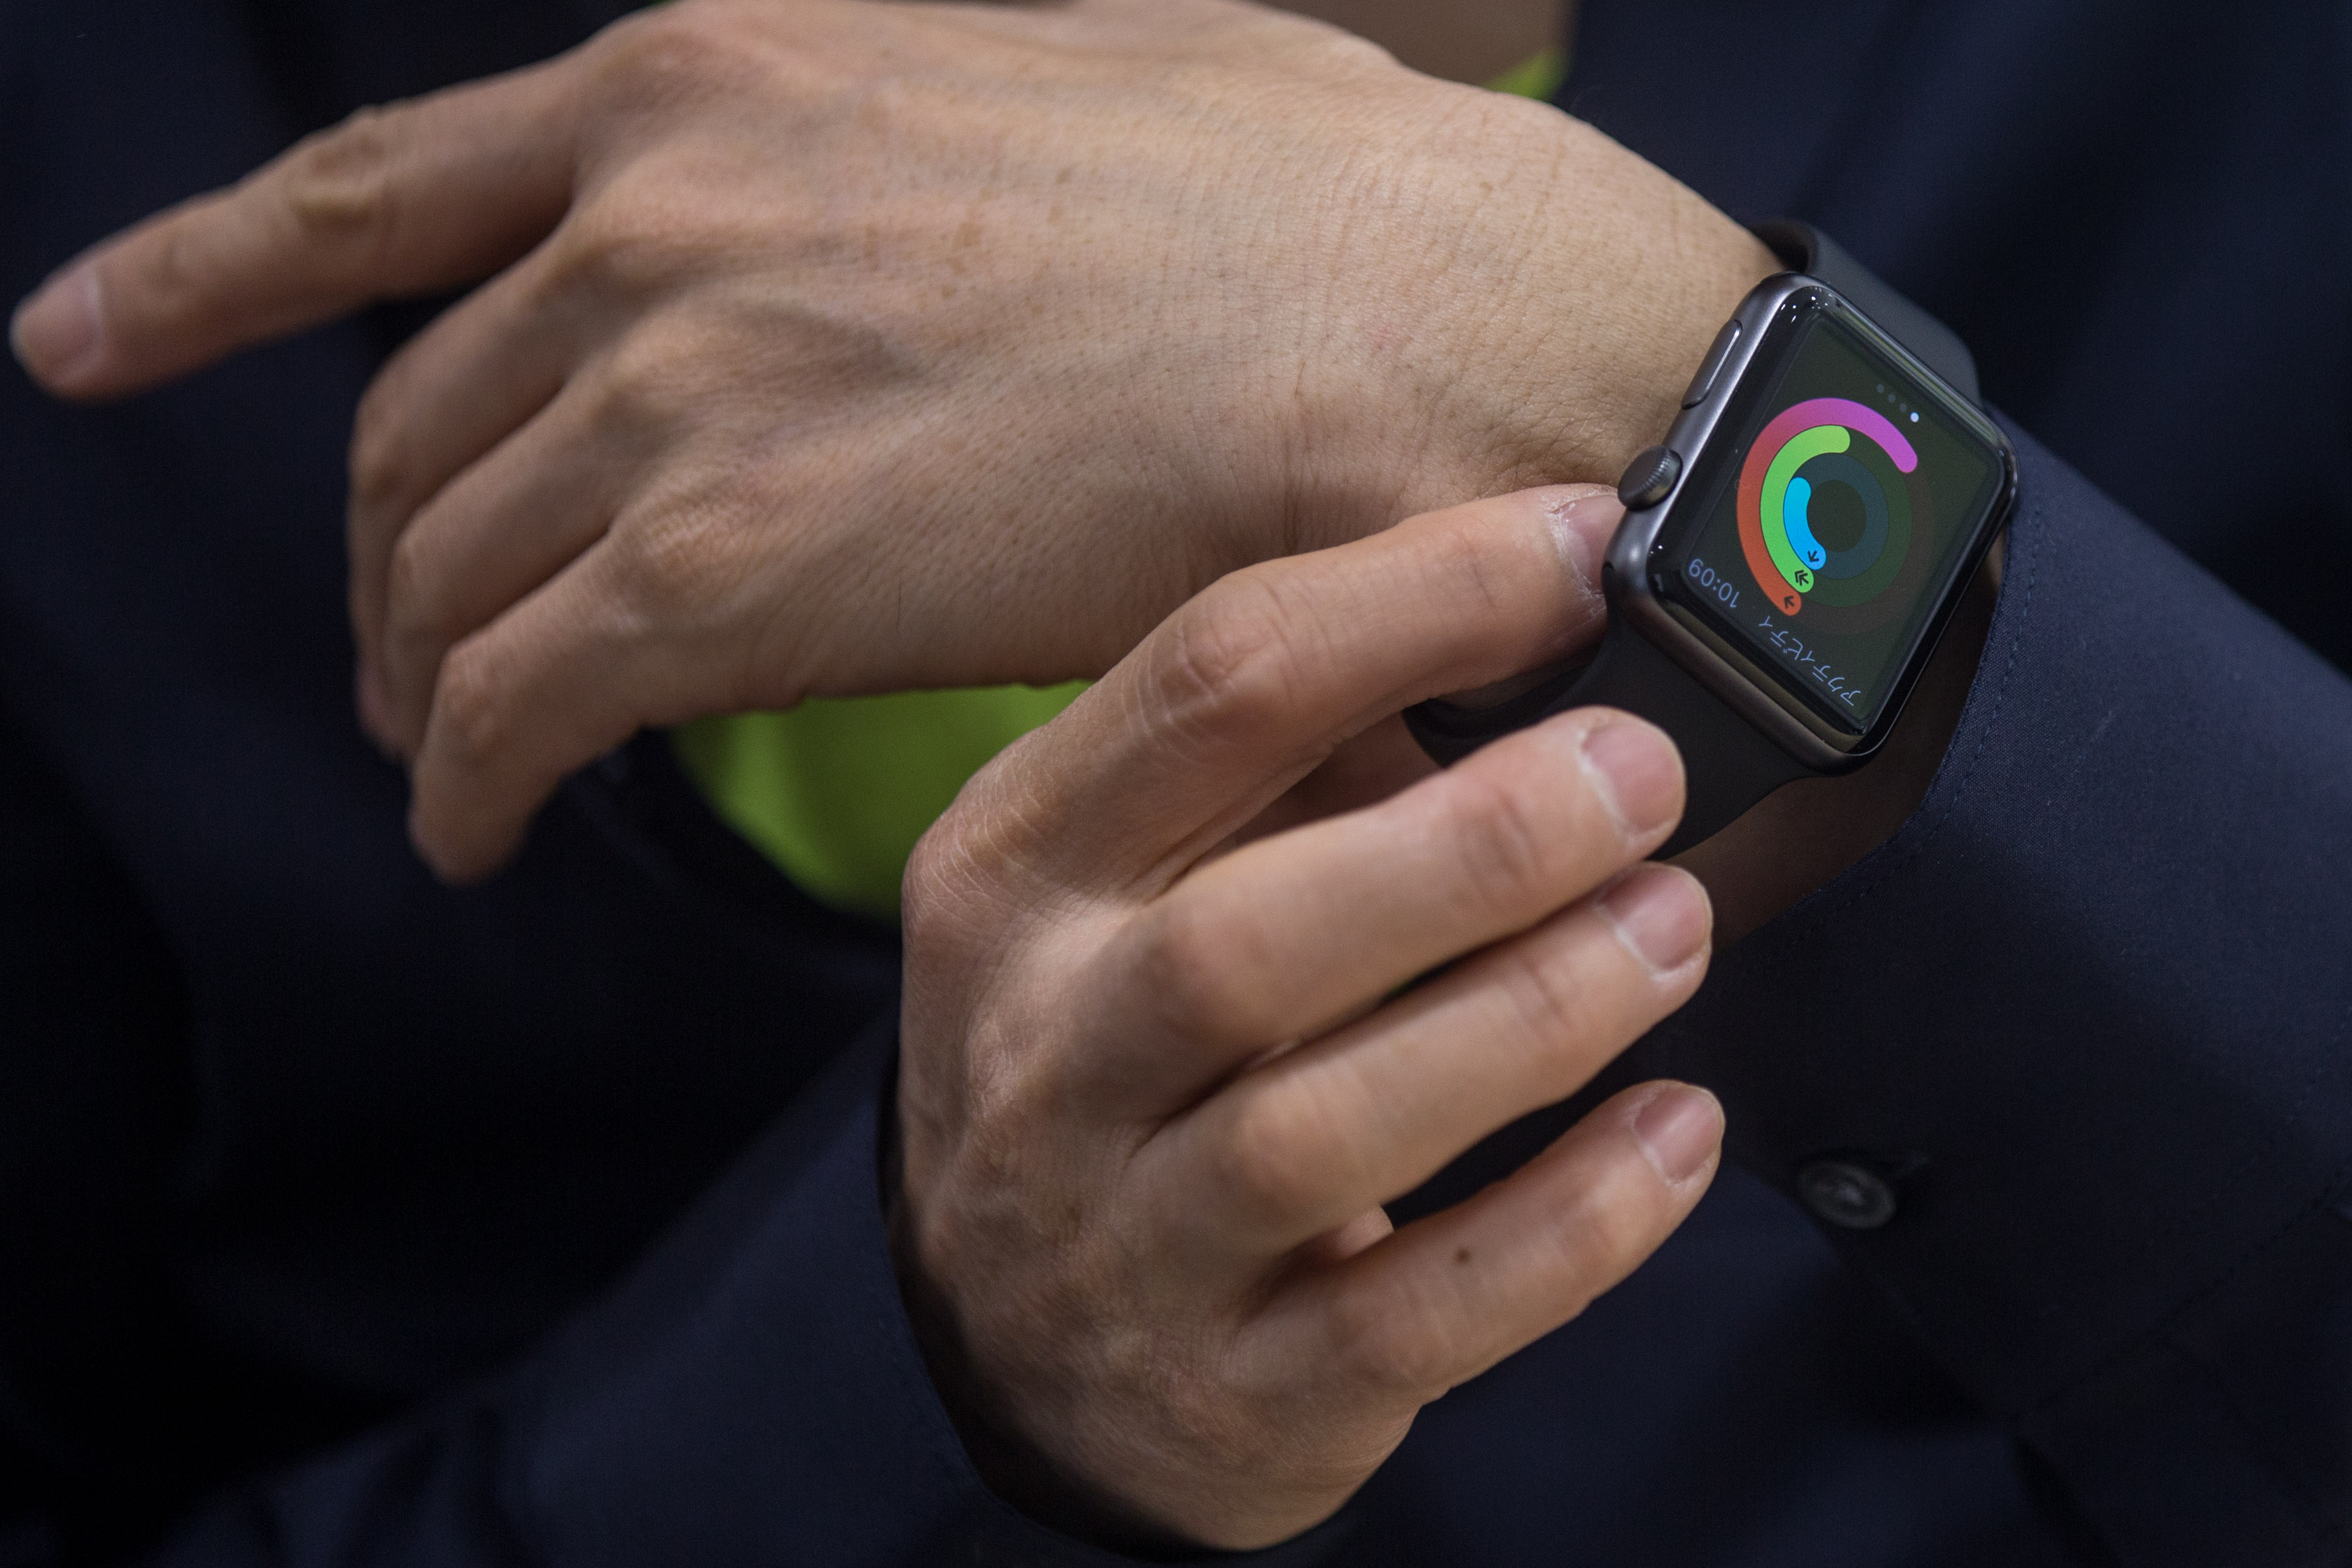 A customer tries on an Apple Watch at a store on April 24, 2015 in Tokyo, Japan.